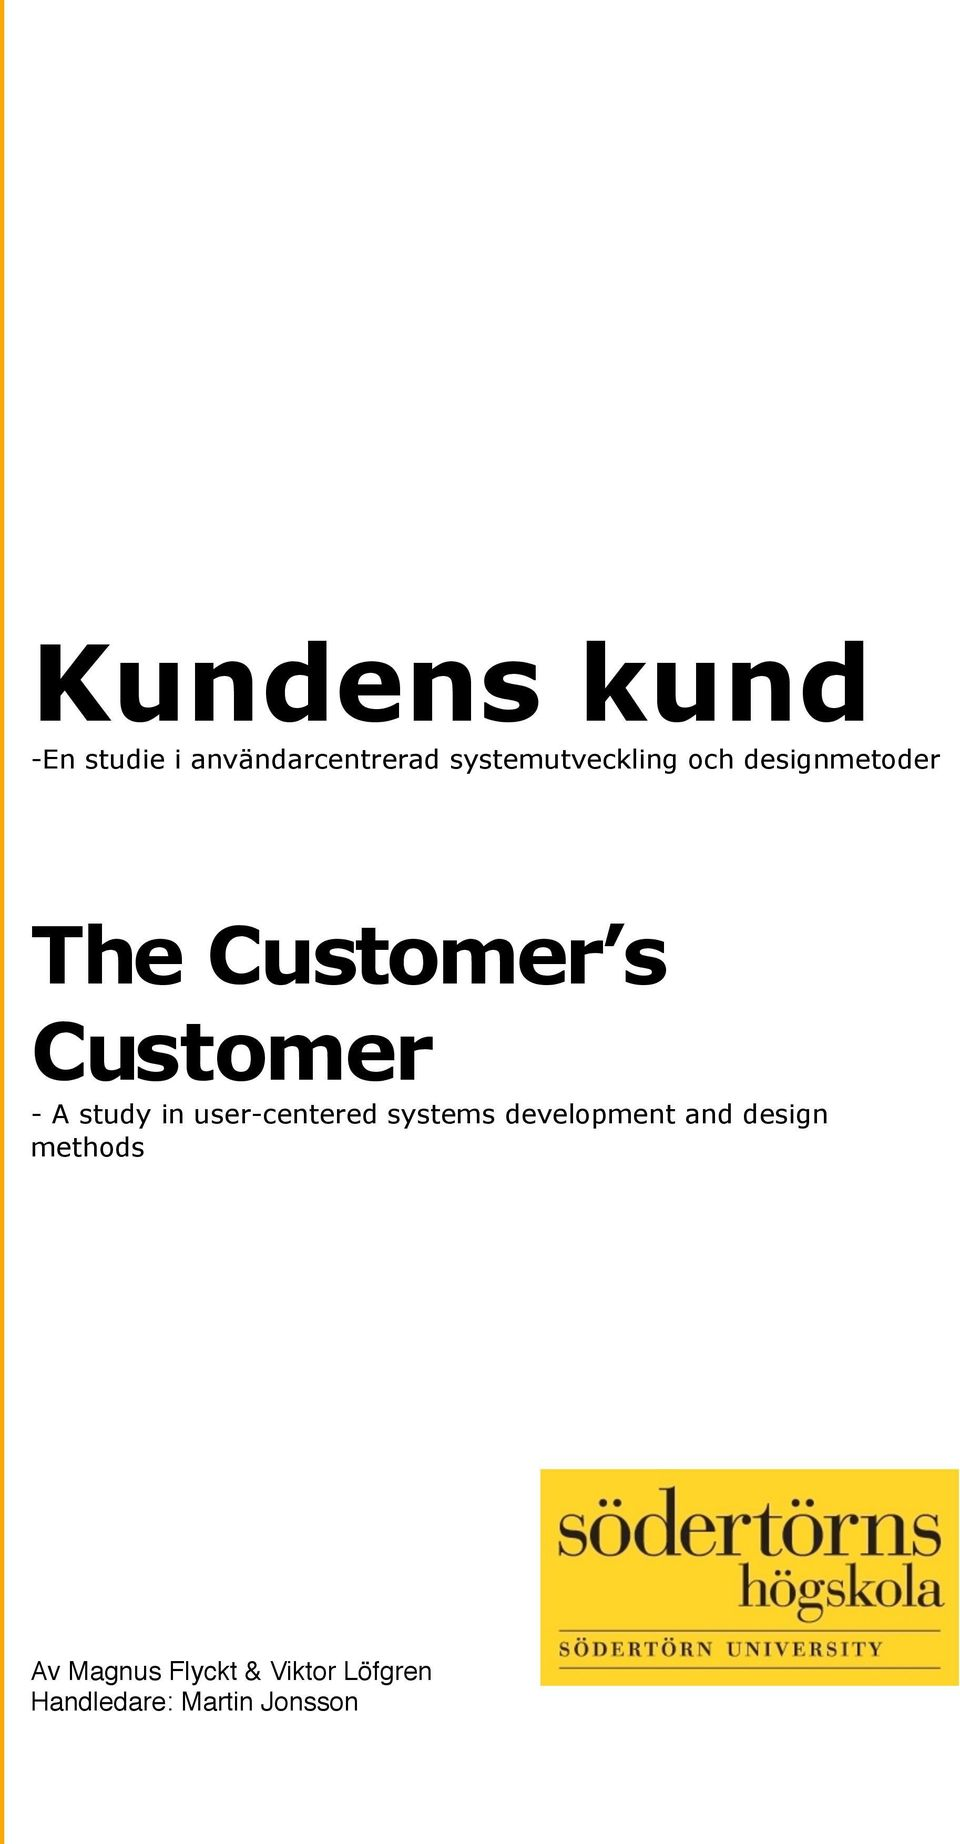 Customer - A study in user-centered systems development